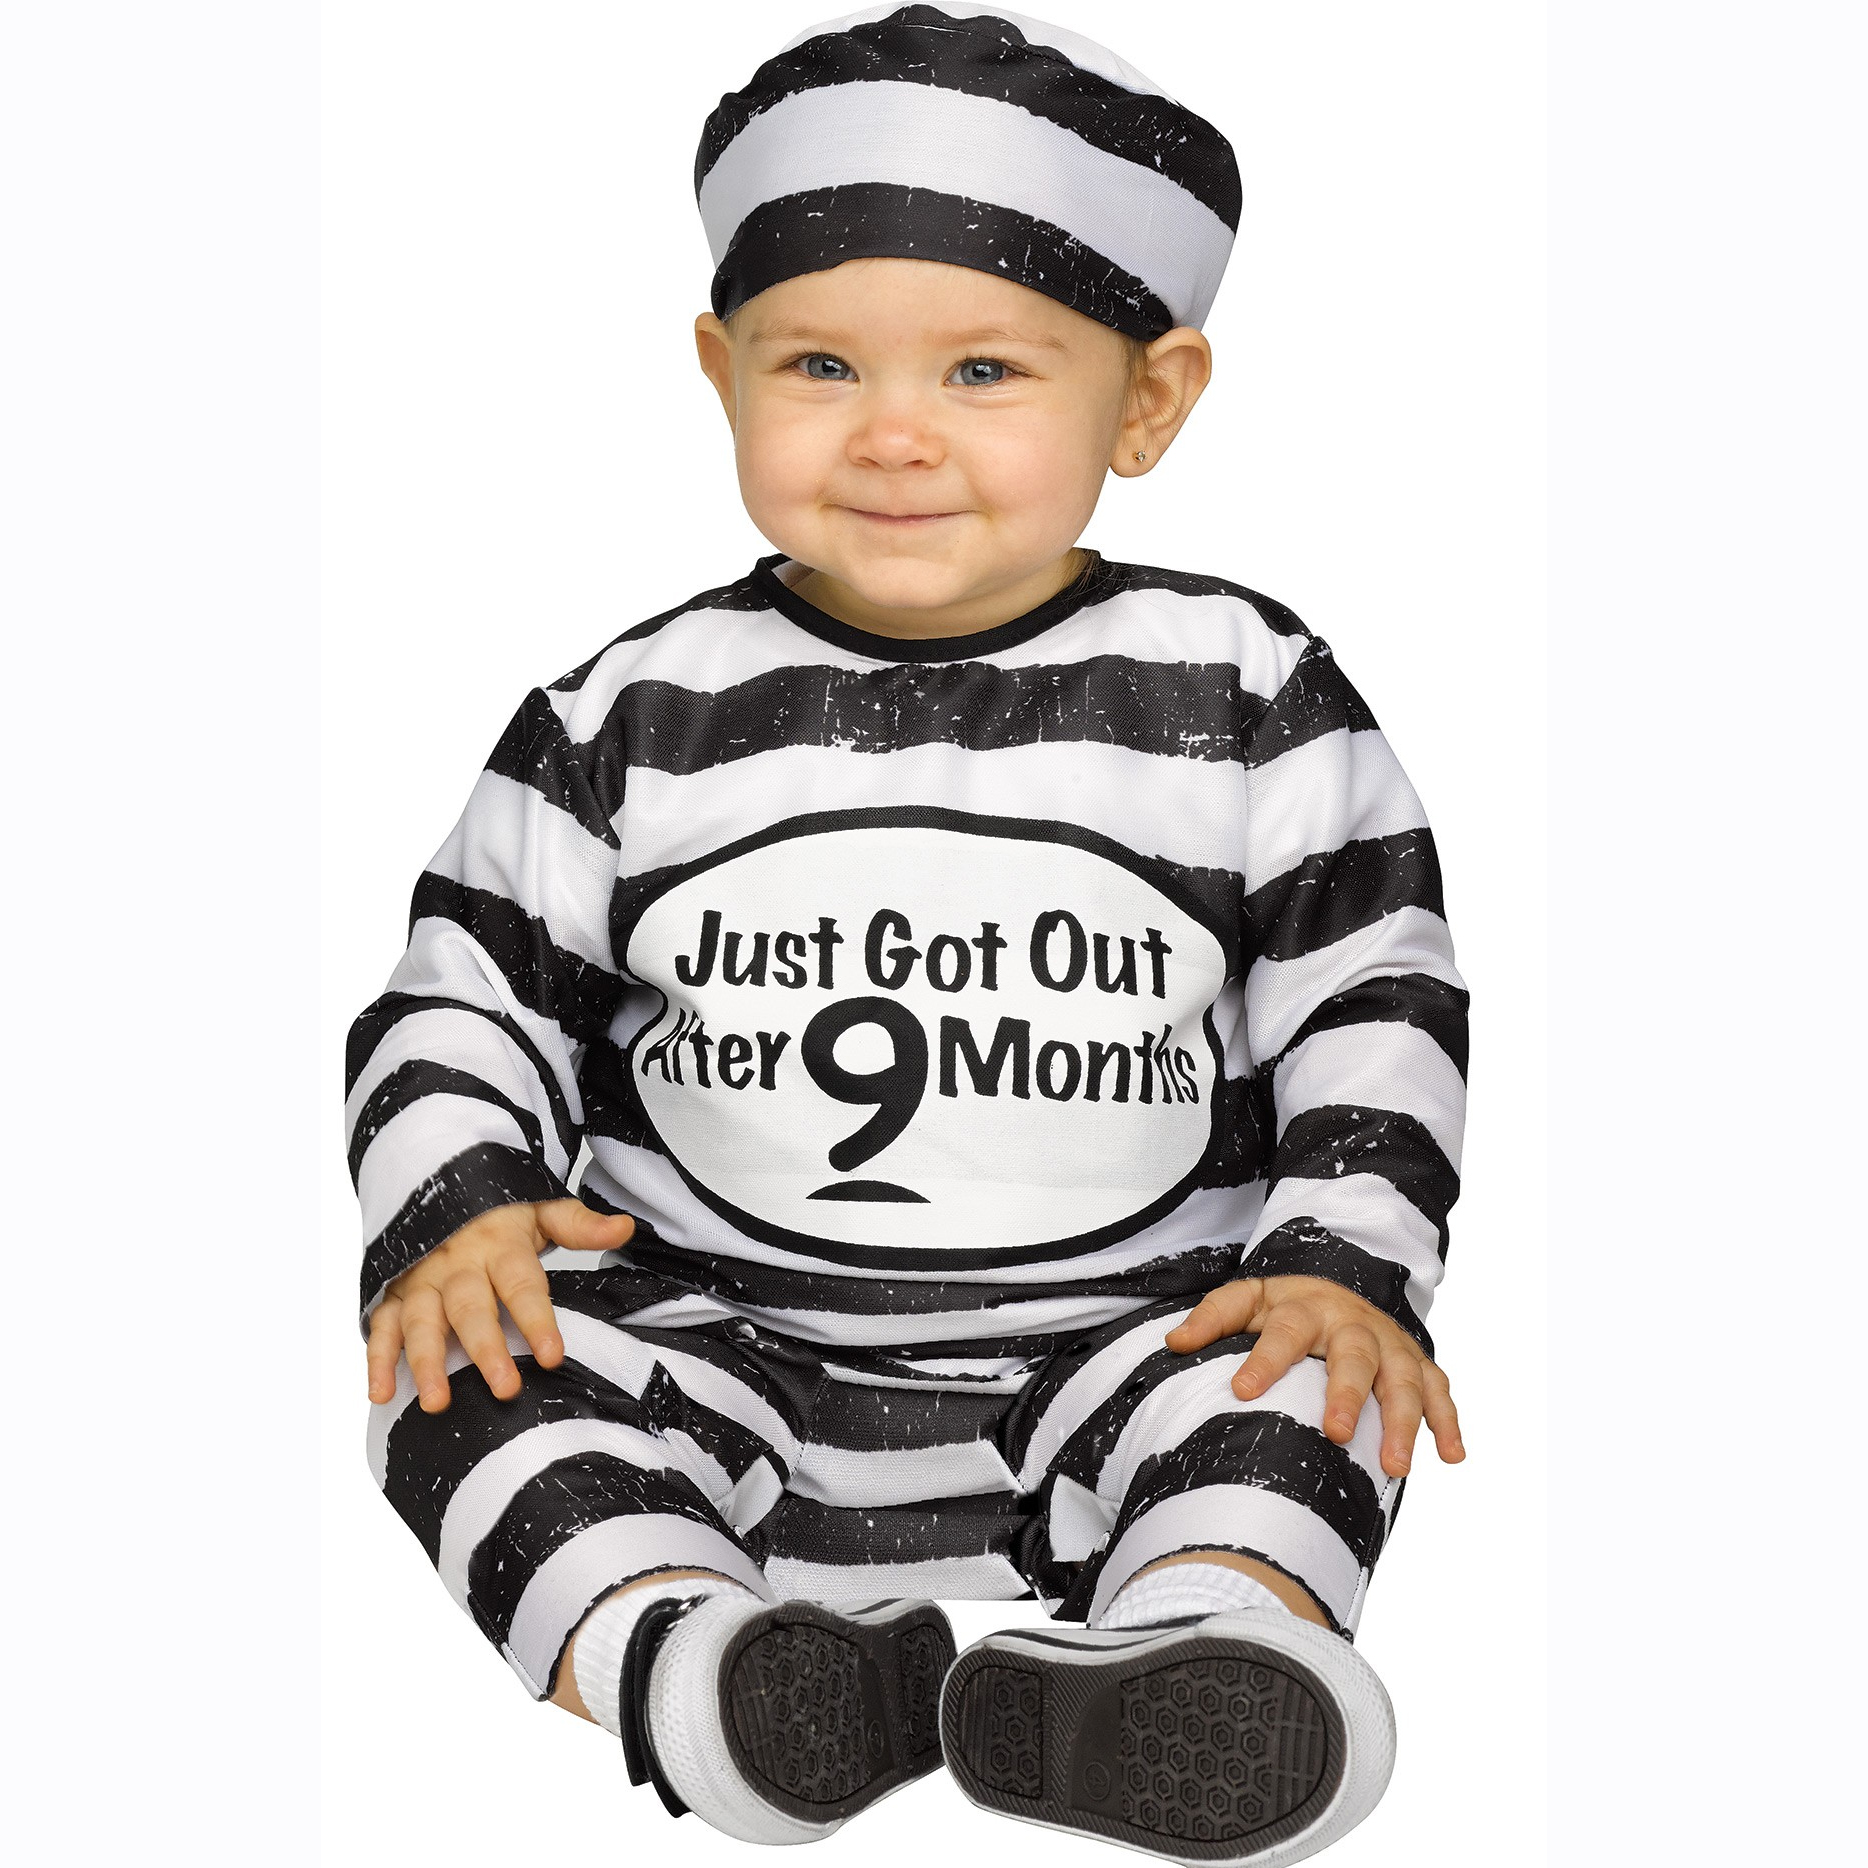 Time Out Tot Infant Costume